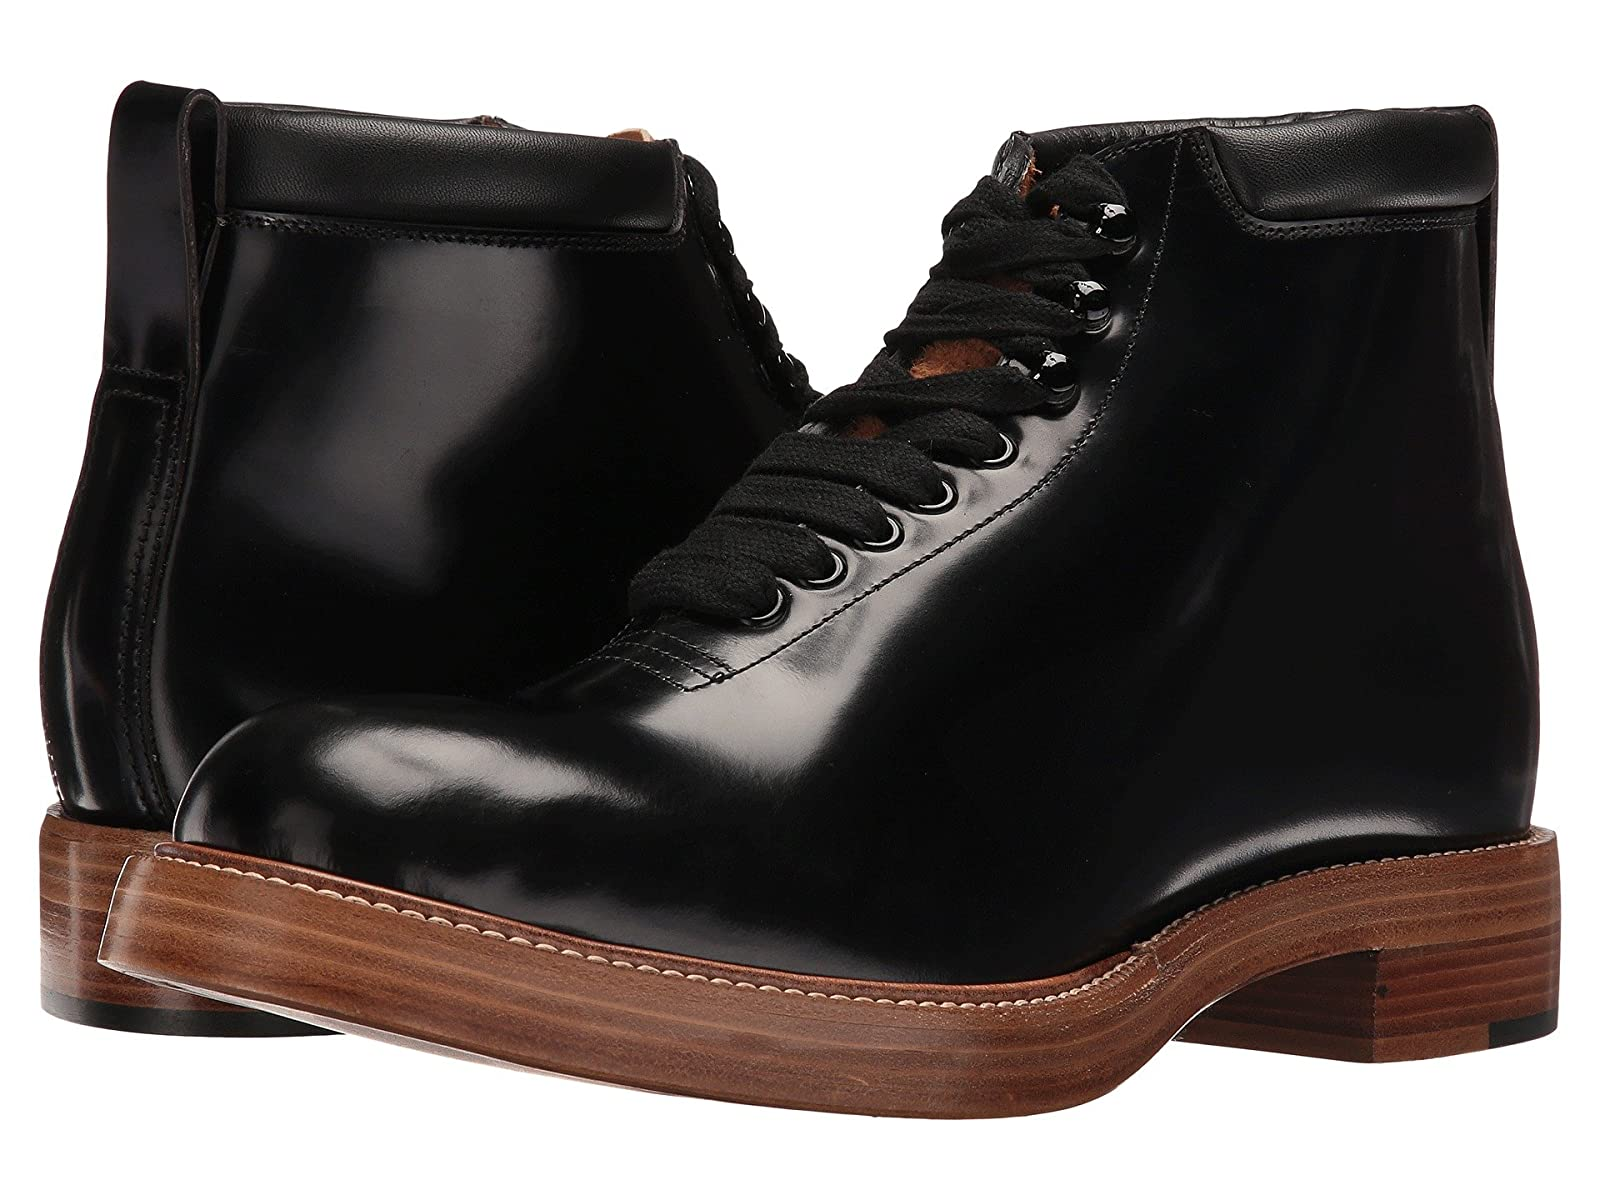 Vivienne Westwood Tommy BootCheap and distinctive eye-catching shoes